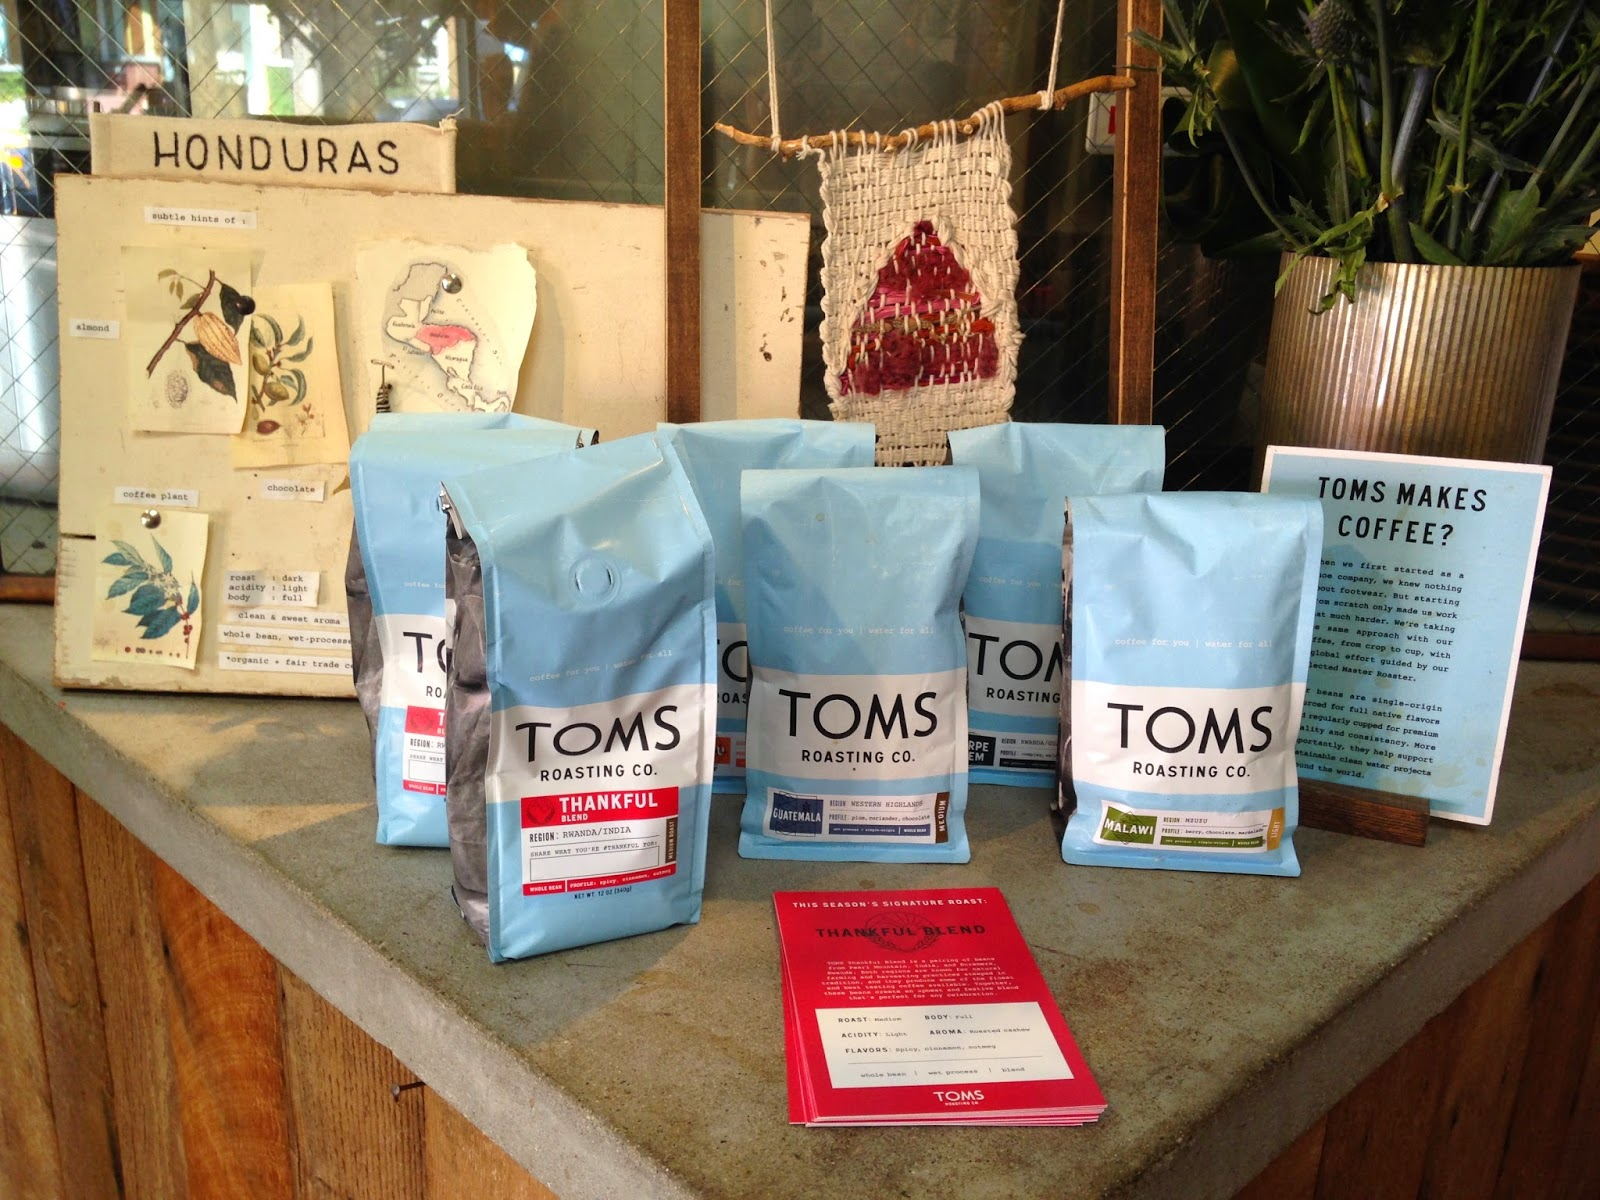 TOMS Roasting Co. Coffee Shop Venice - Hello, Handbag